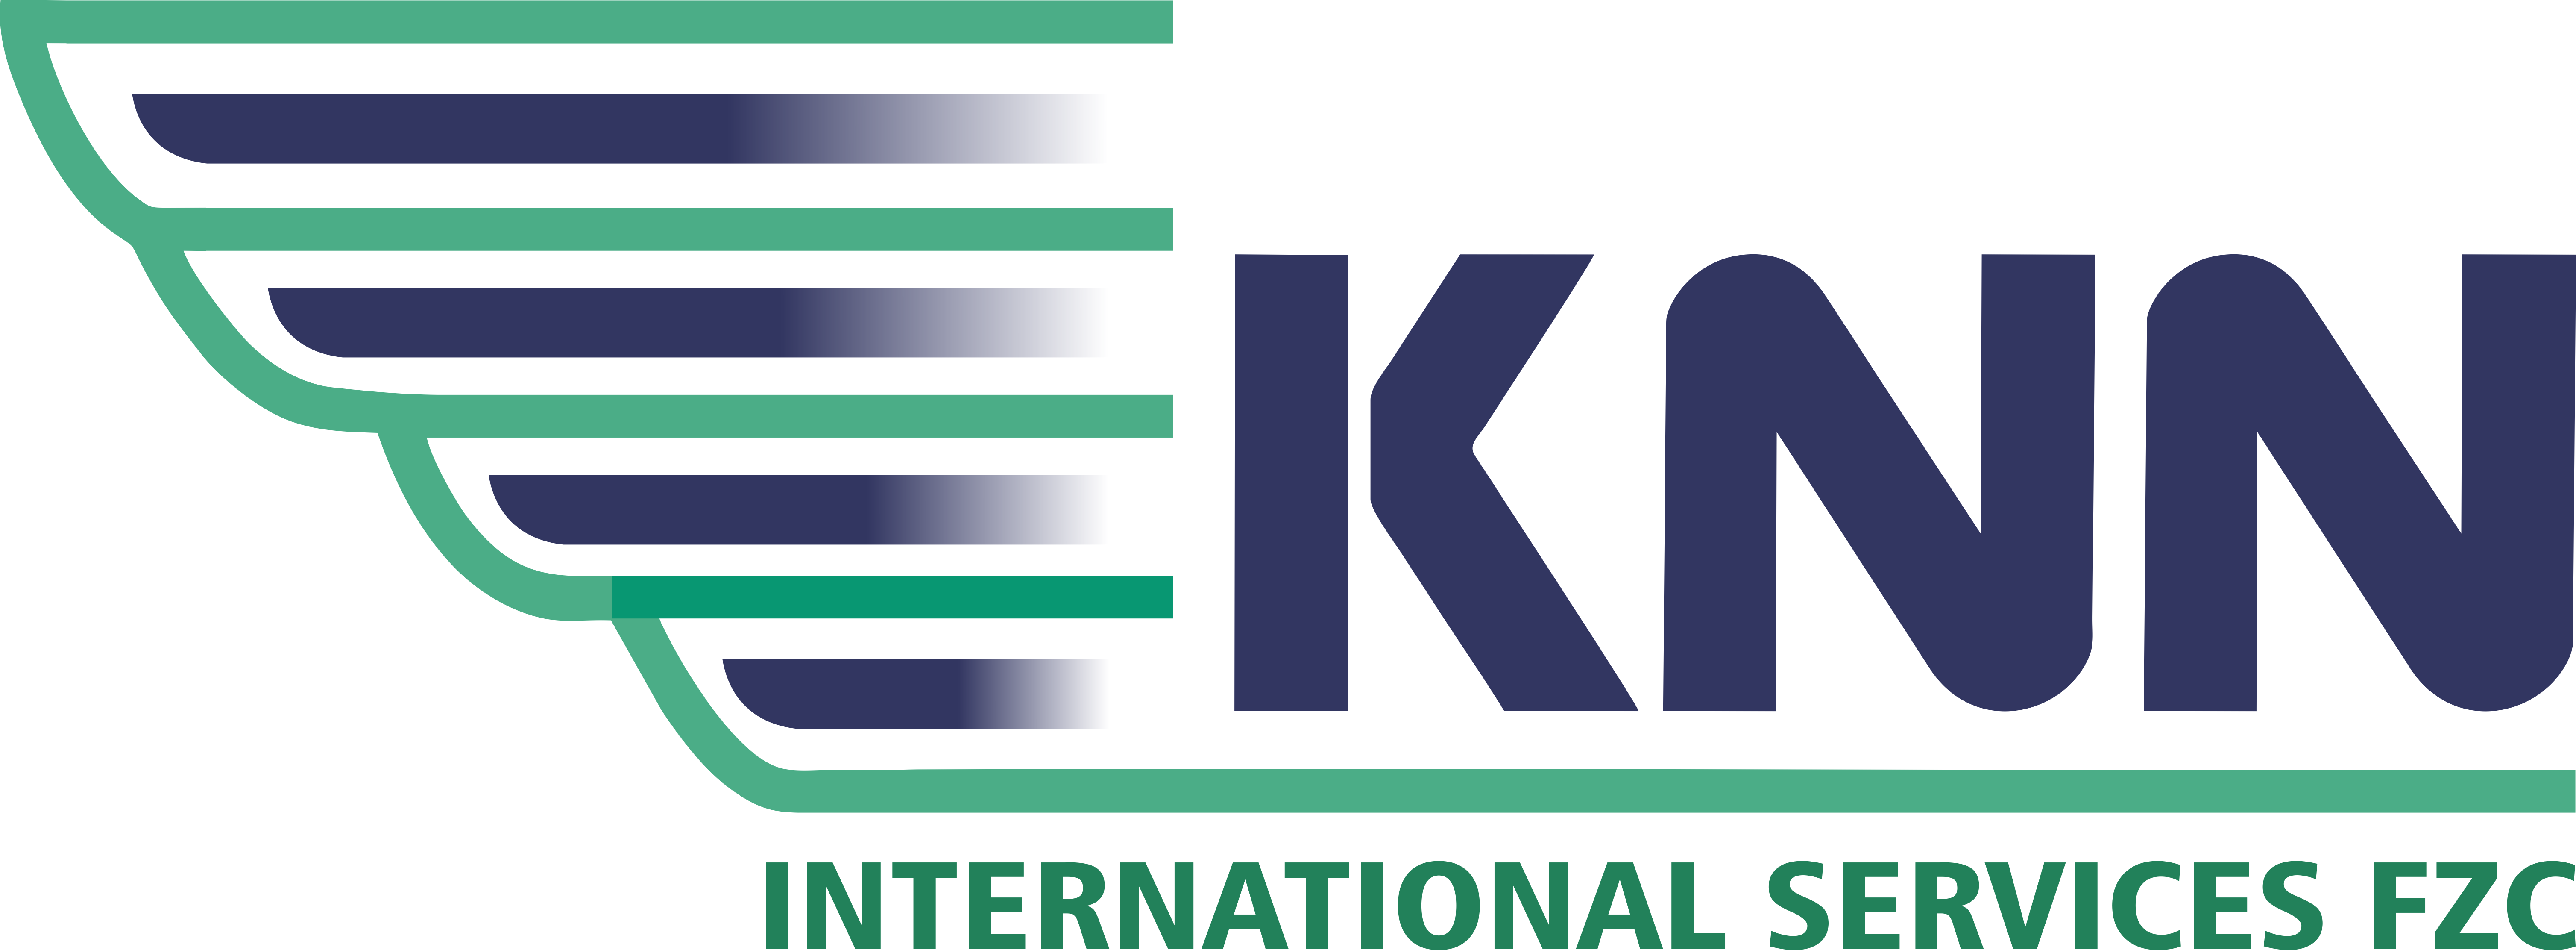 KNN INTERNATIONAL SERVICES FZC